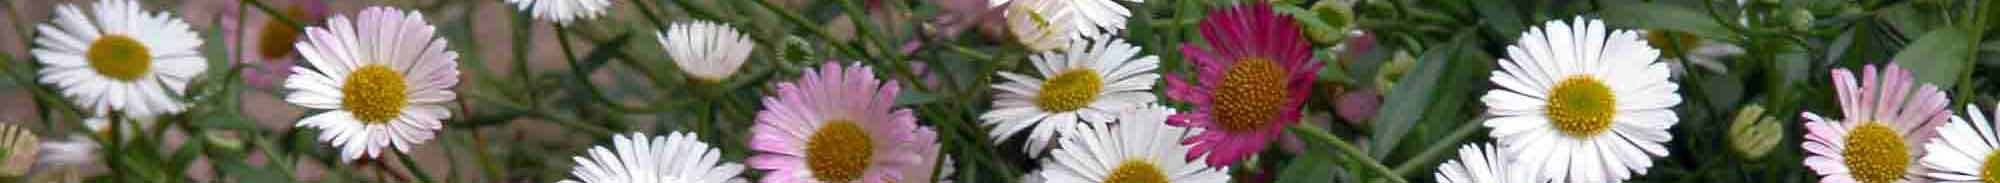 Flower border with delicate white, purple and pink Erigeron karvinskianus daisy-like flowers